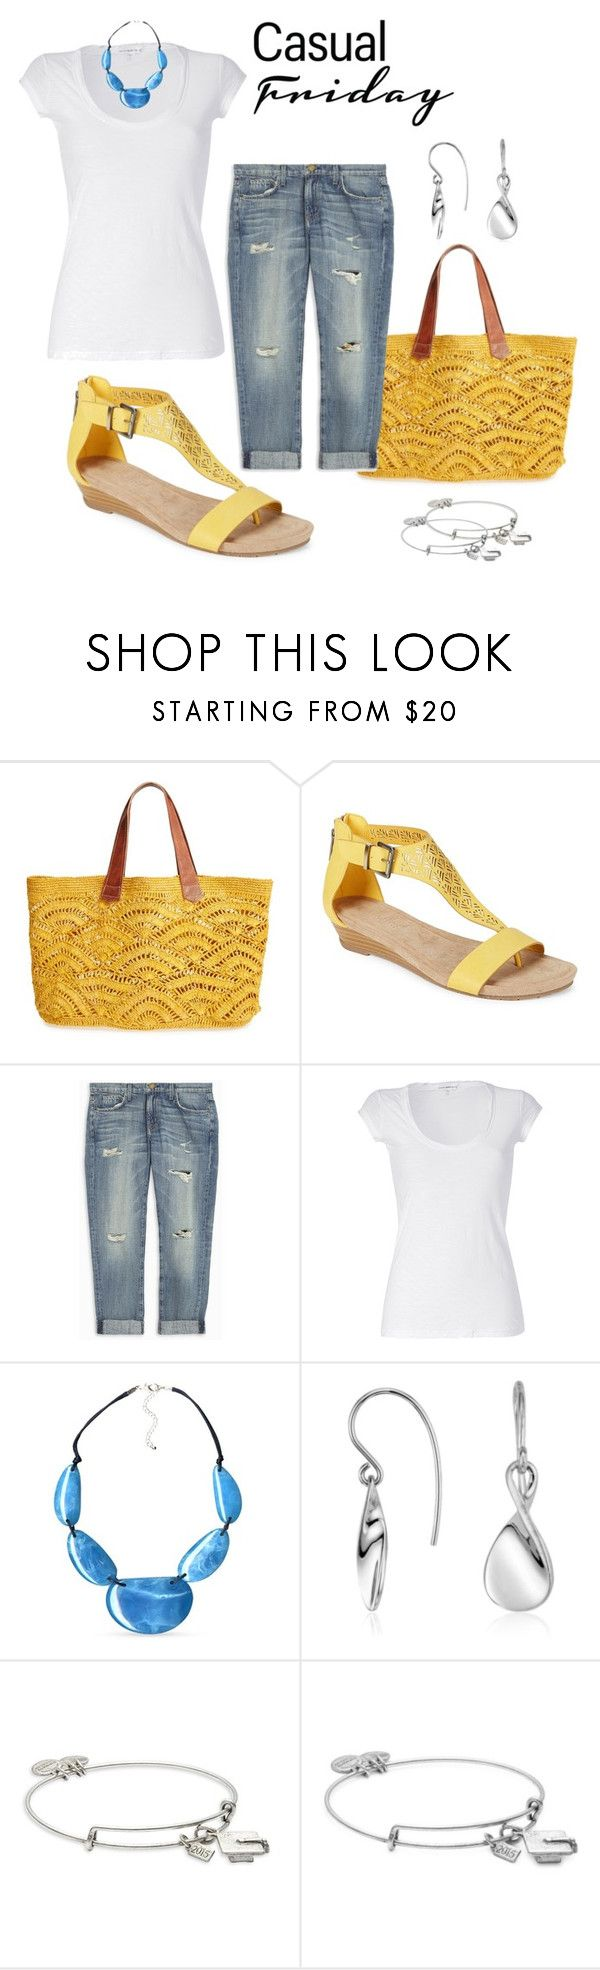 """spring - summer casual"" by citas ❤ liked on Polyvore featuring Mar y Sol, Kenneth Cole Reaction, Current/Elliott, James Perse, Kim Rogers, Blue Nile and Alex and Ani"